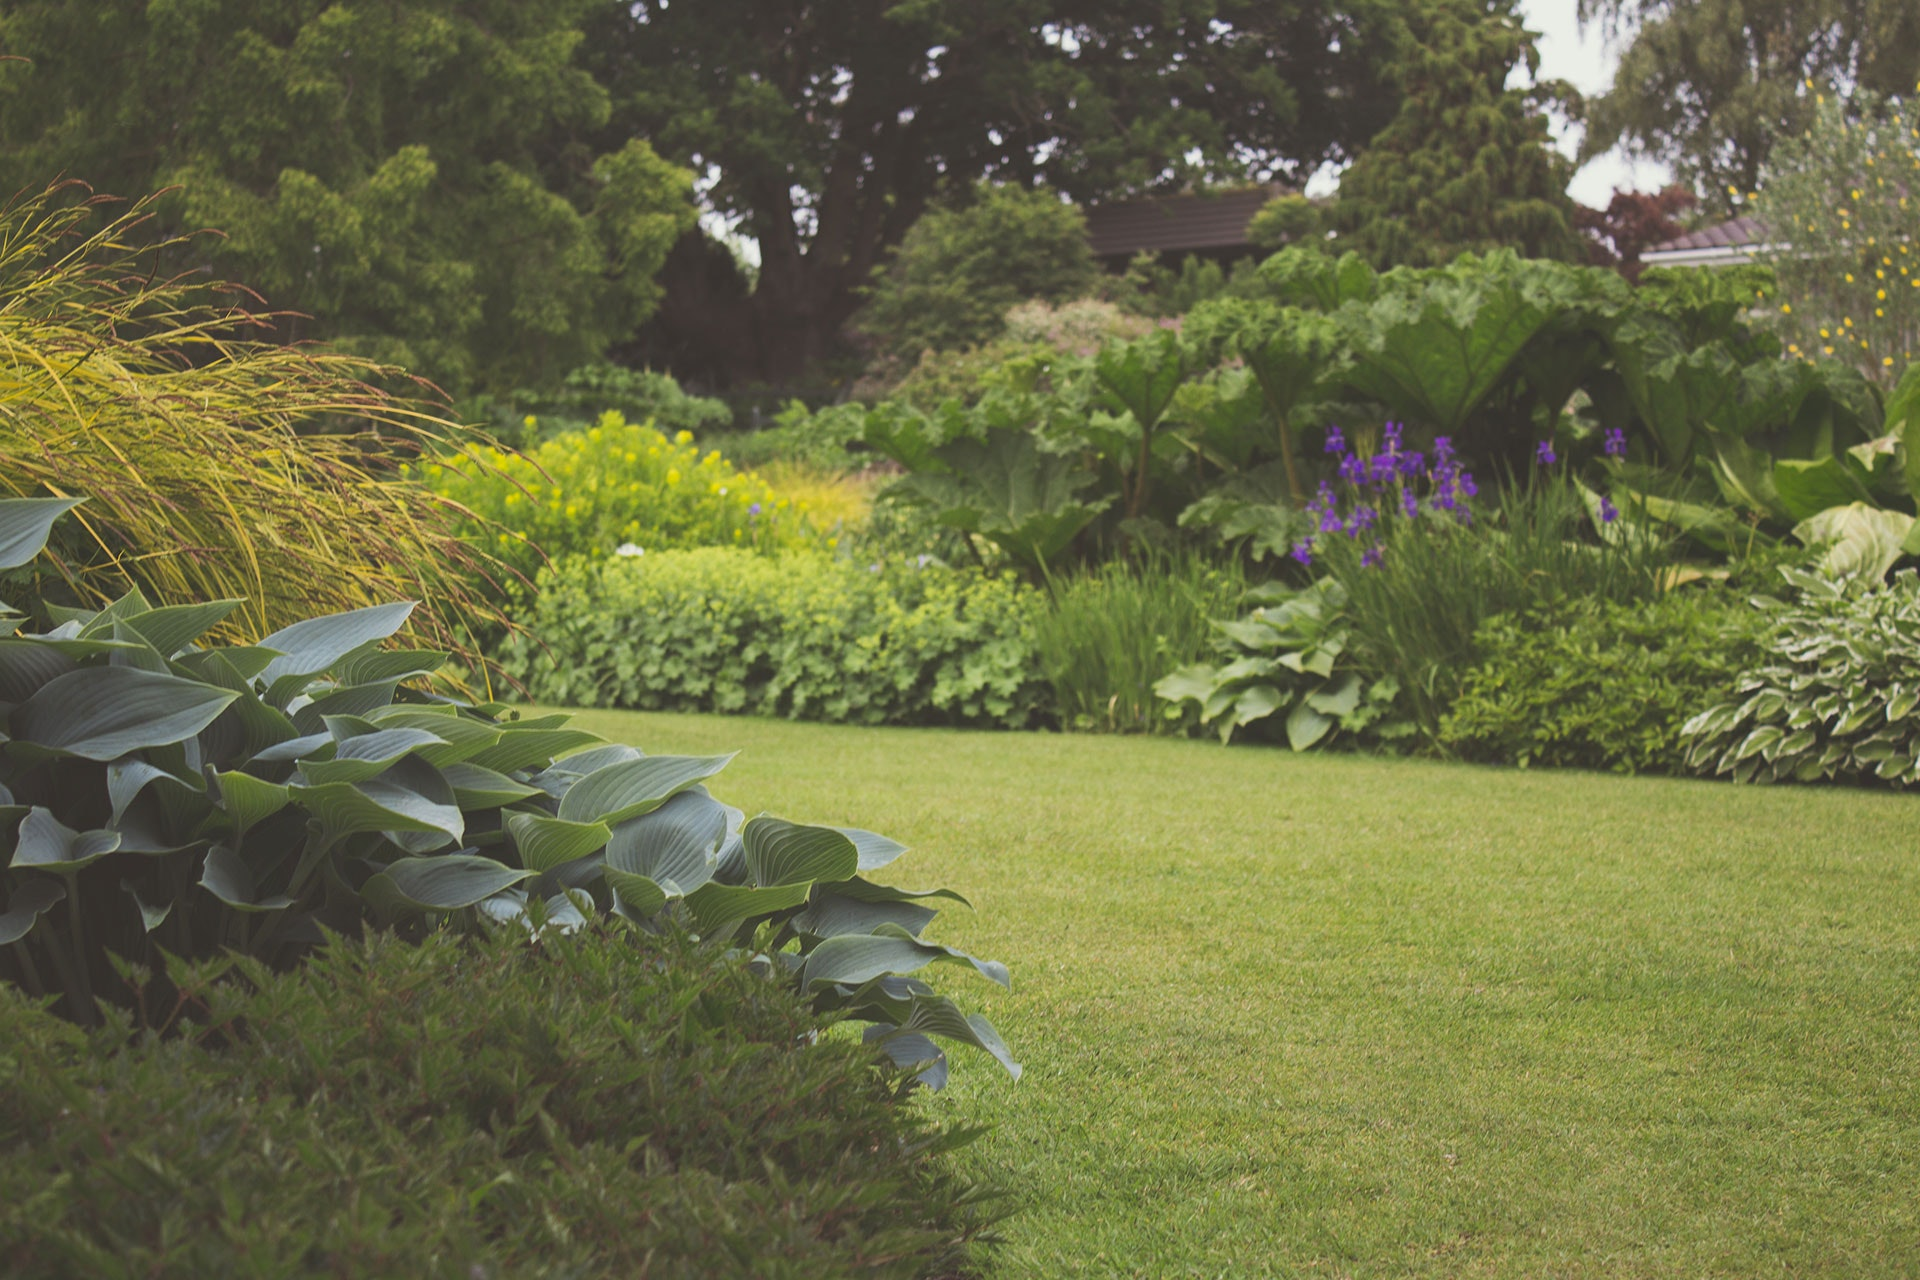 Healthy well maintained garden with numerous green plants and purple flowers